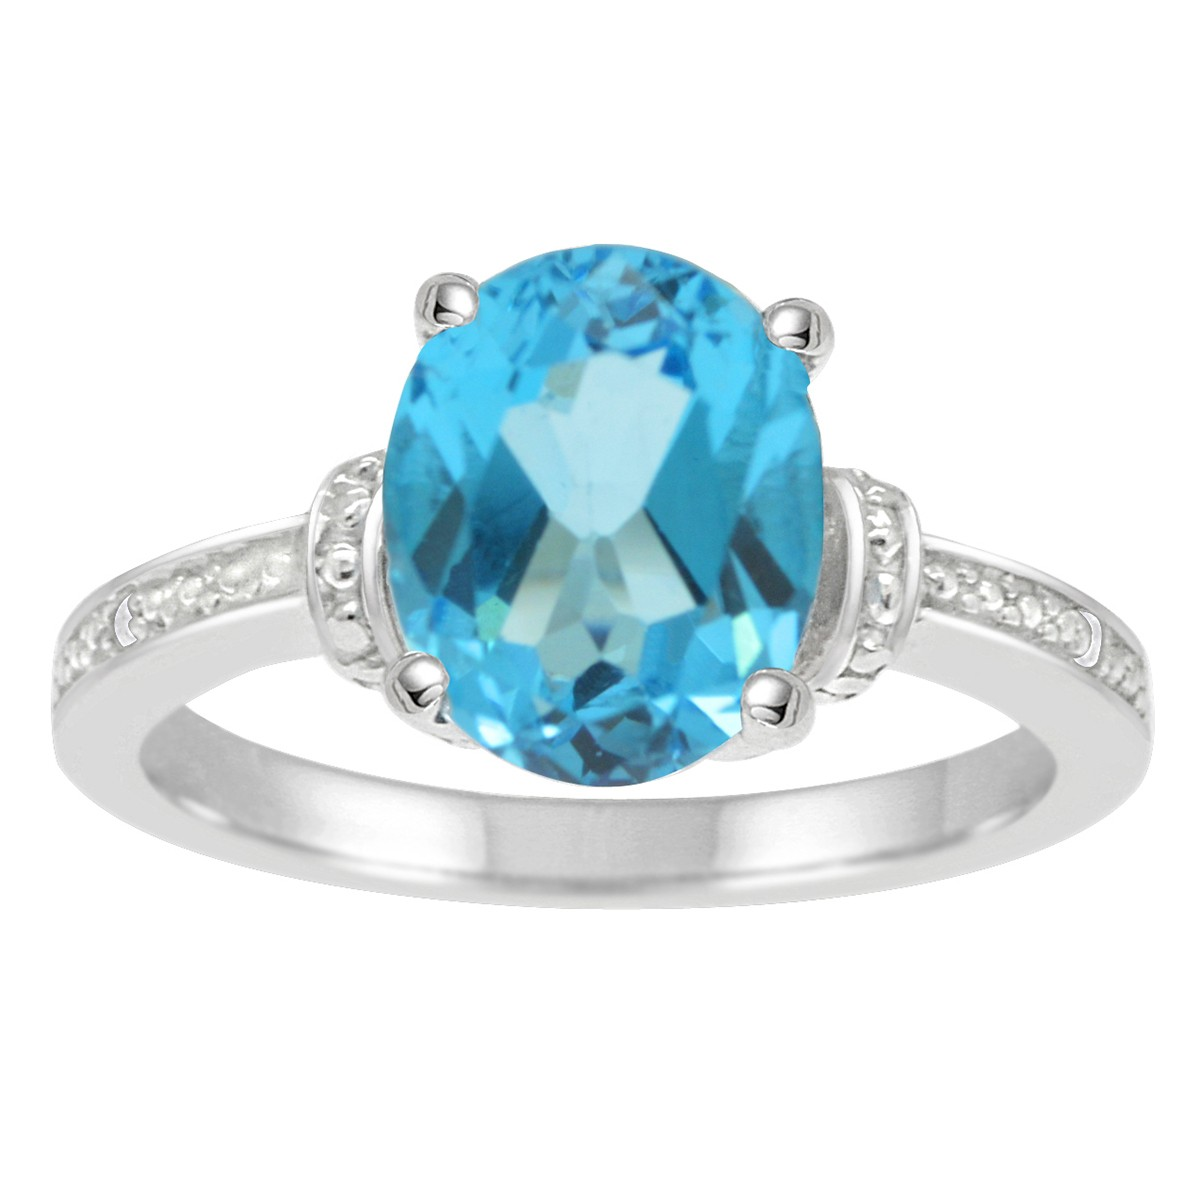 best value source for gemstone and diamond jewelry oval blue topaz and diamond. Black Bedroom Furniture Sets. Home Design Ideas